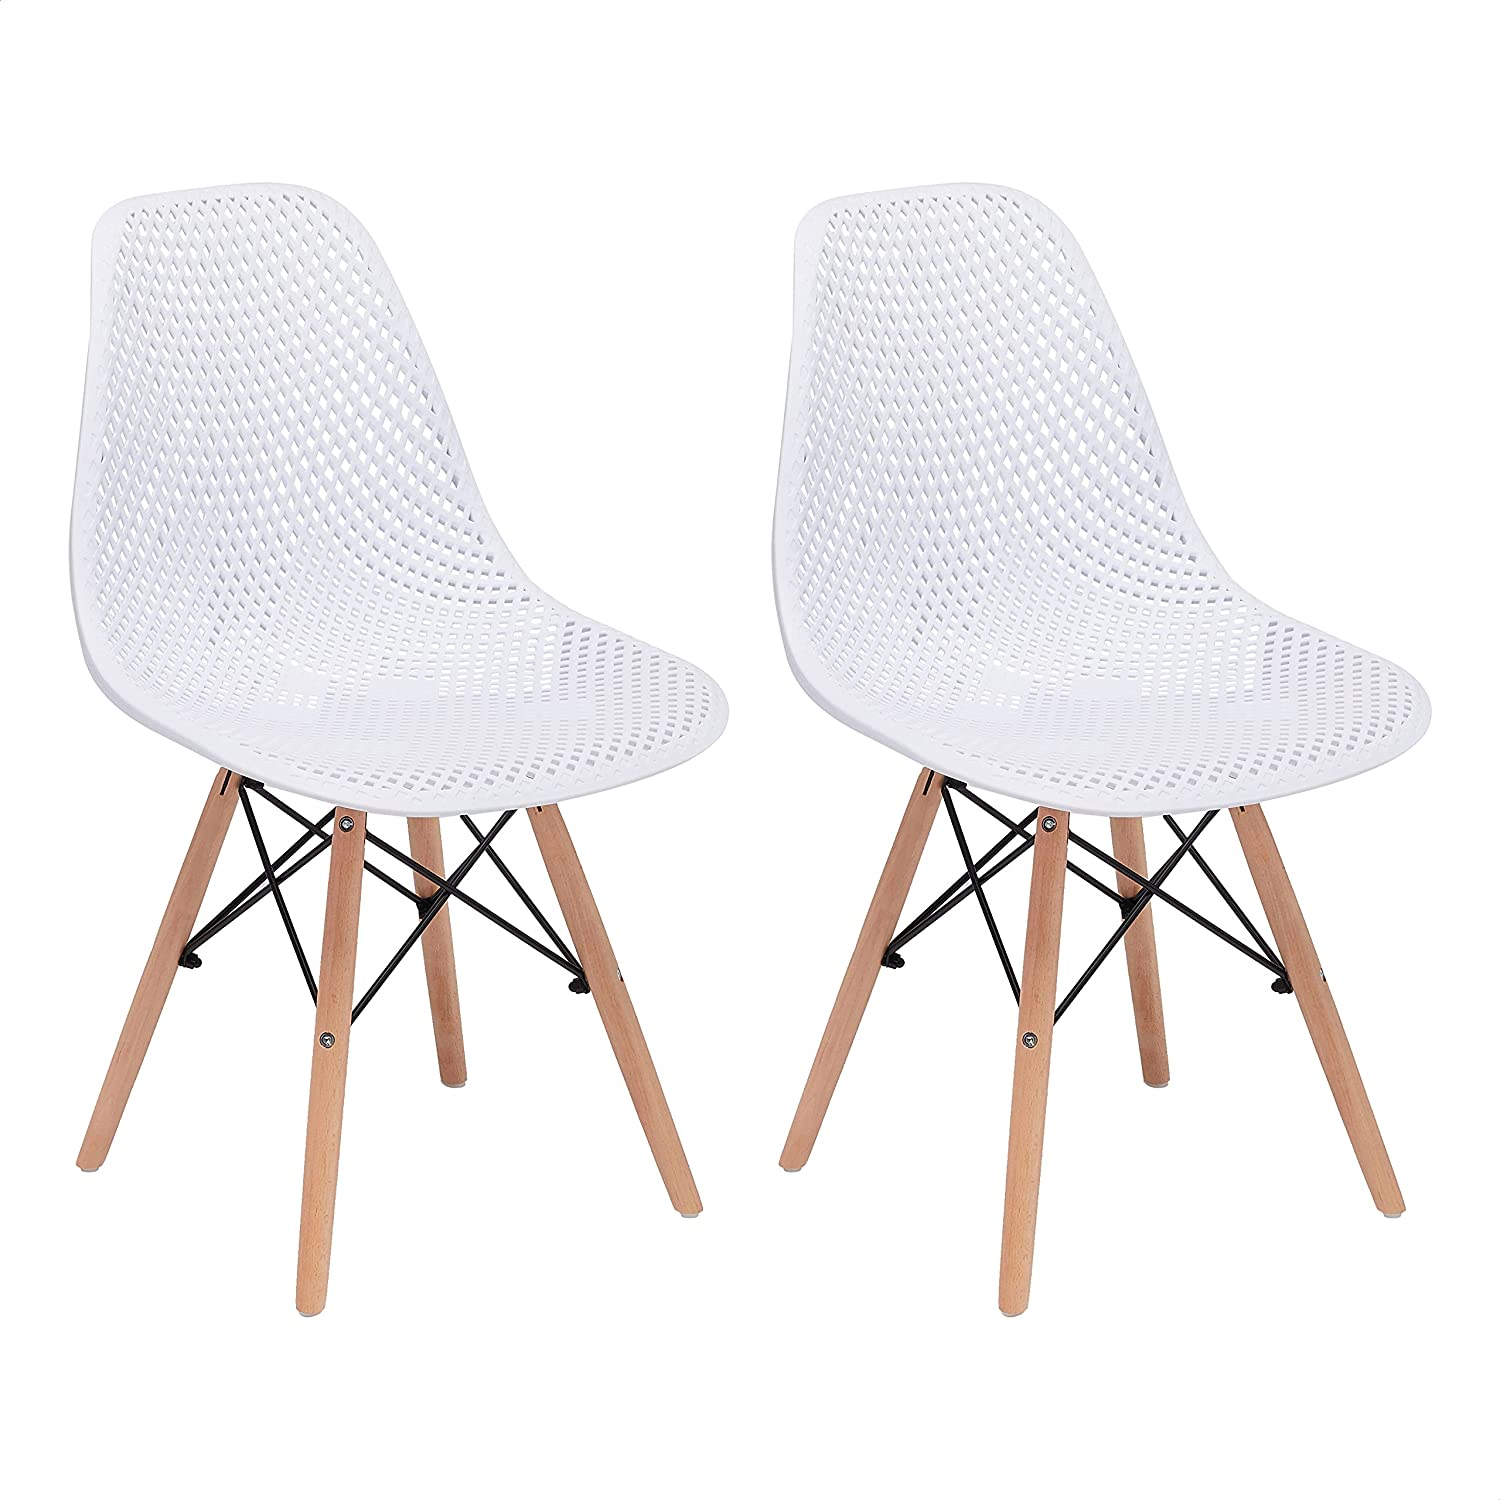 CangLong Dining Chairs Max 66% OFF Set of 2 White OFFicial site